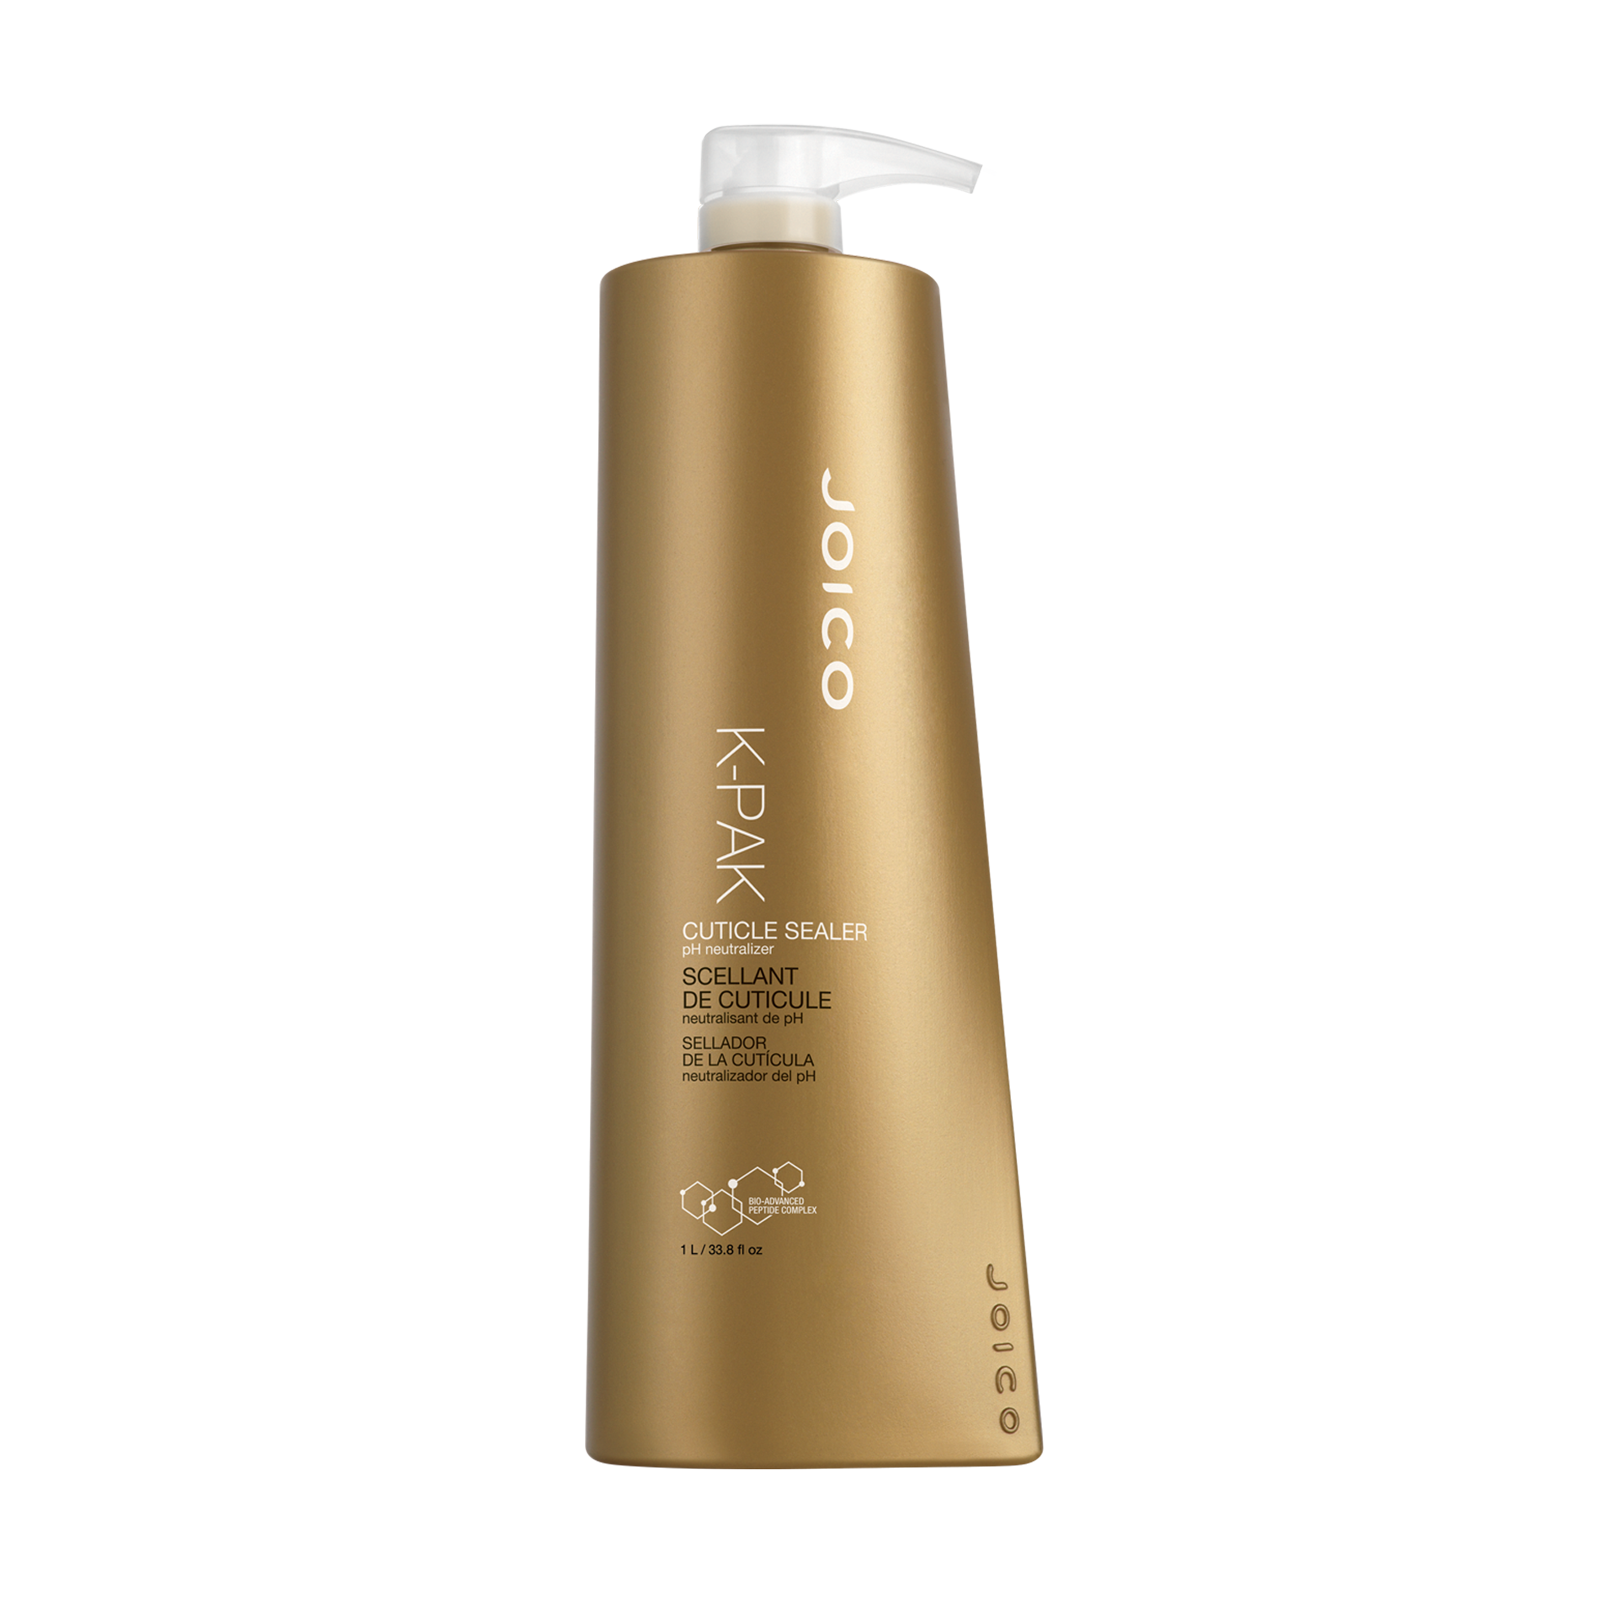 Joico K-Pak Professional Cuticle Sealer Liter - $47.00